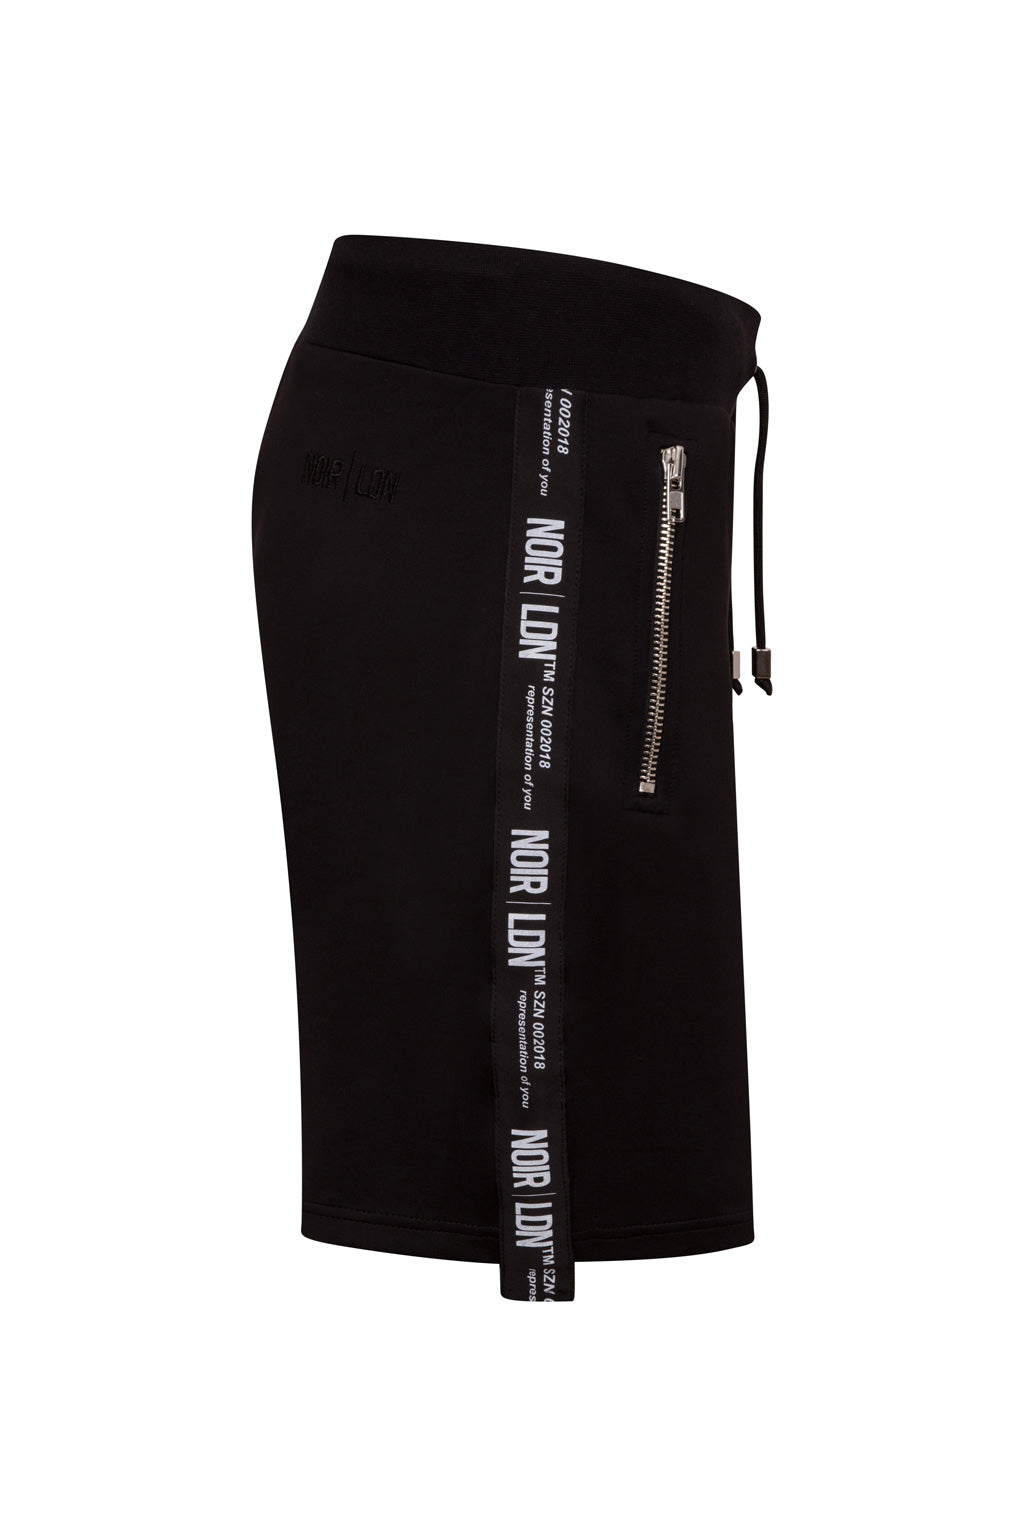 BLACK TWINSET SHORT - NOIR | LDN